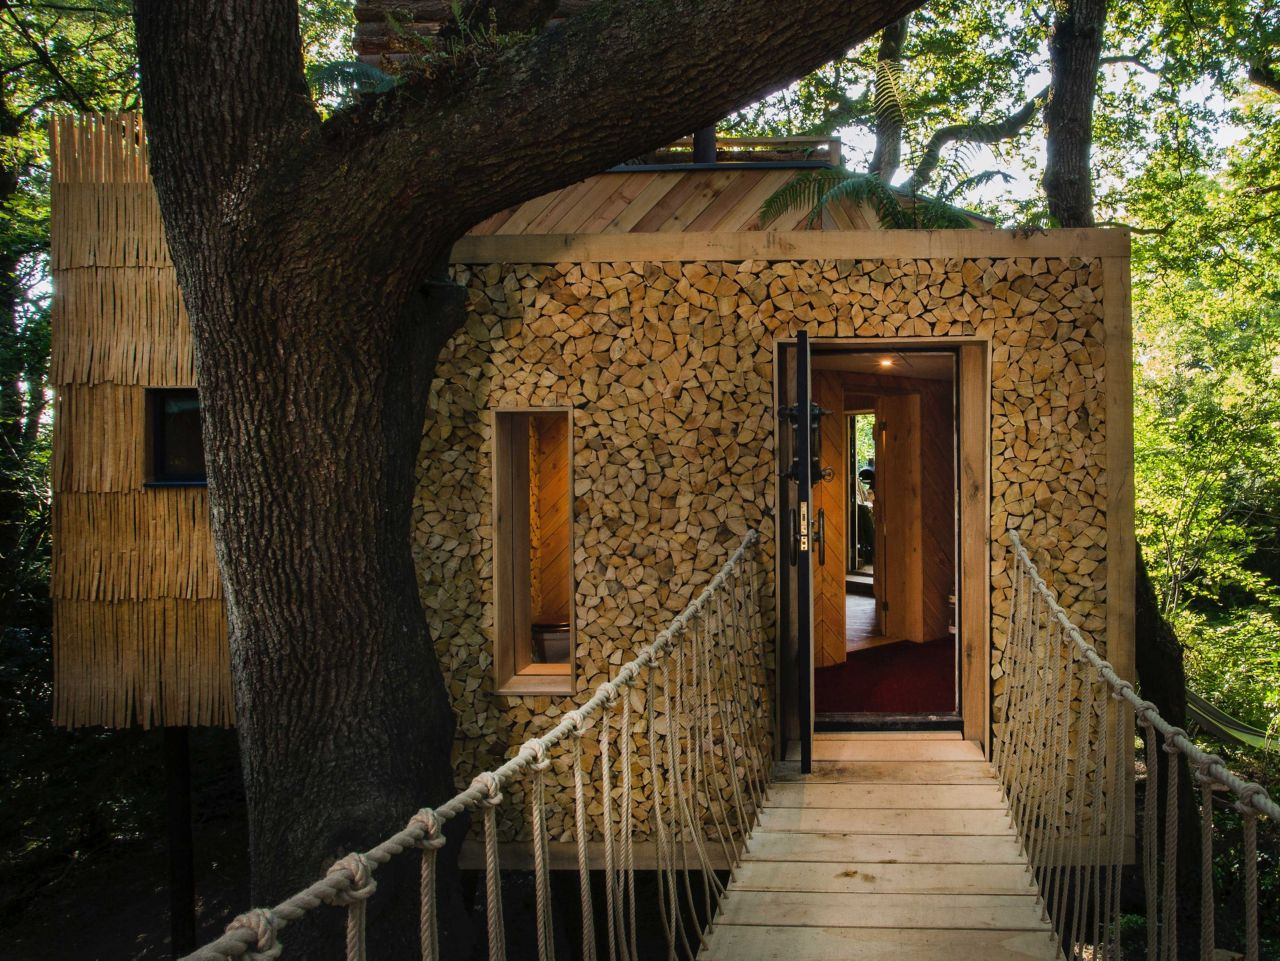 The Woodman's Treehouse in Dorset